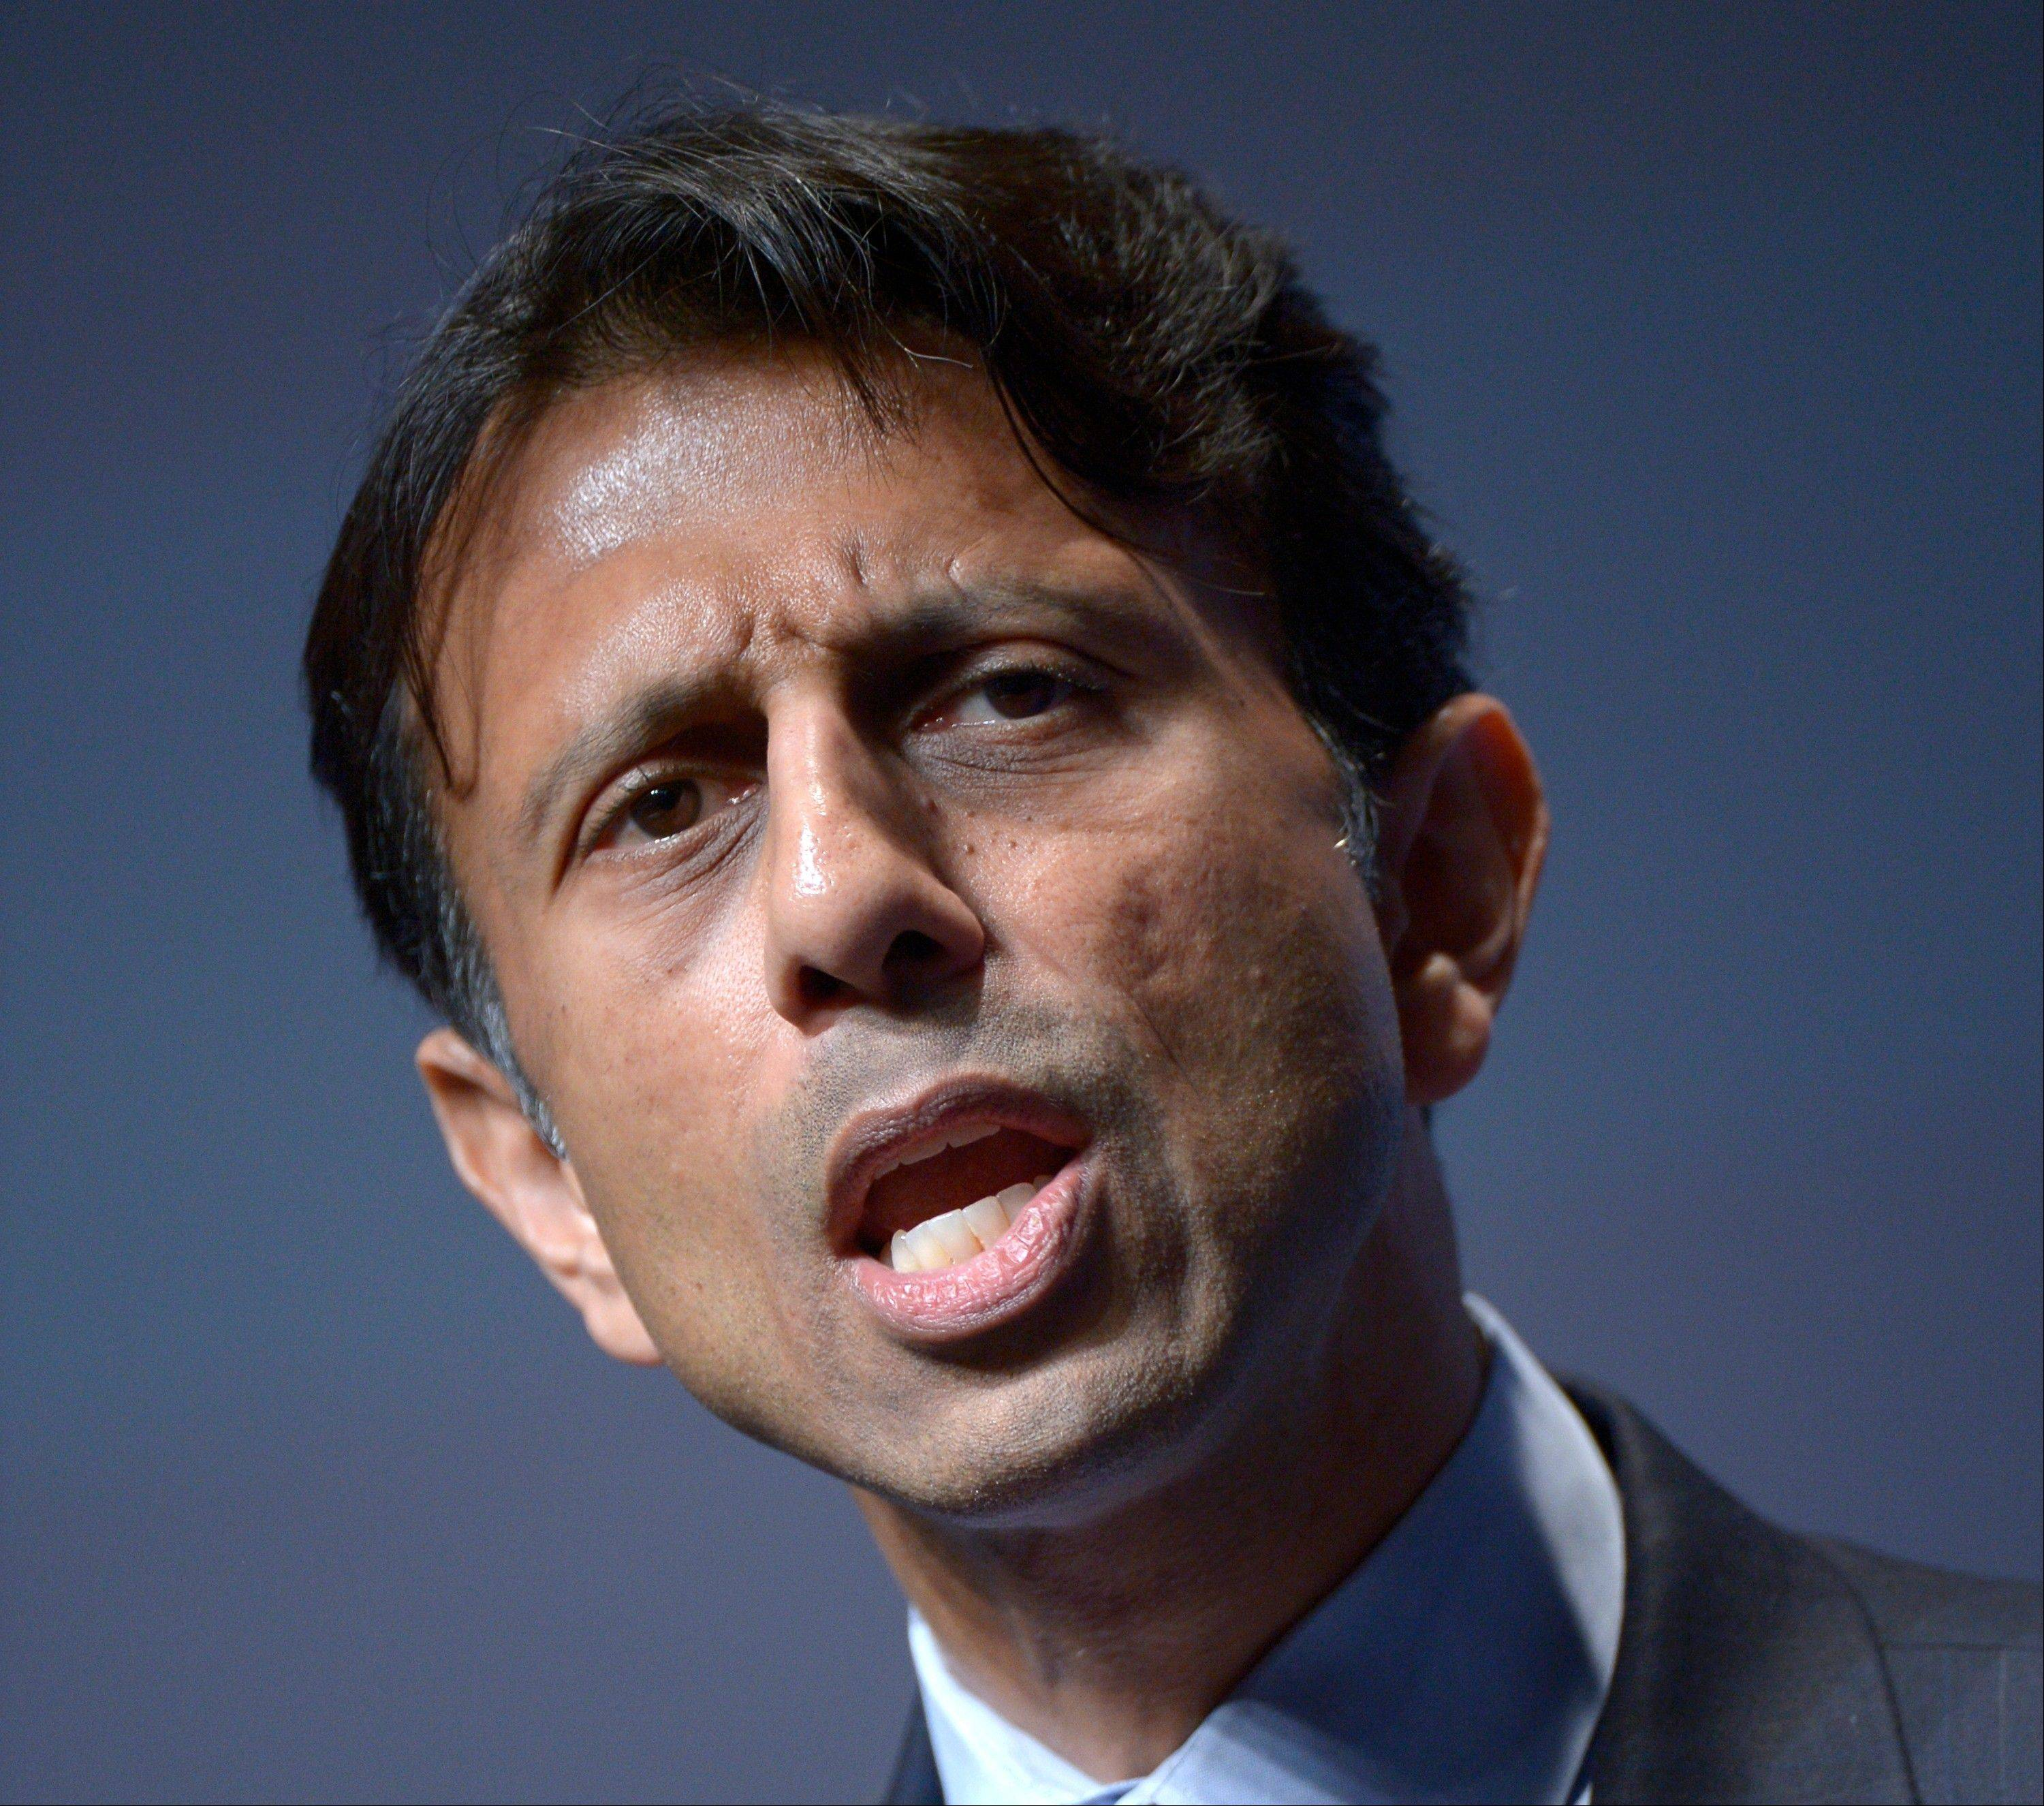 A look at potential presidential candidate Bobby Jindal